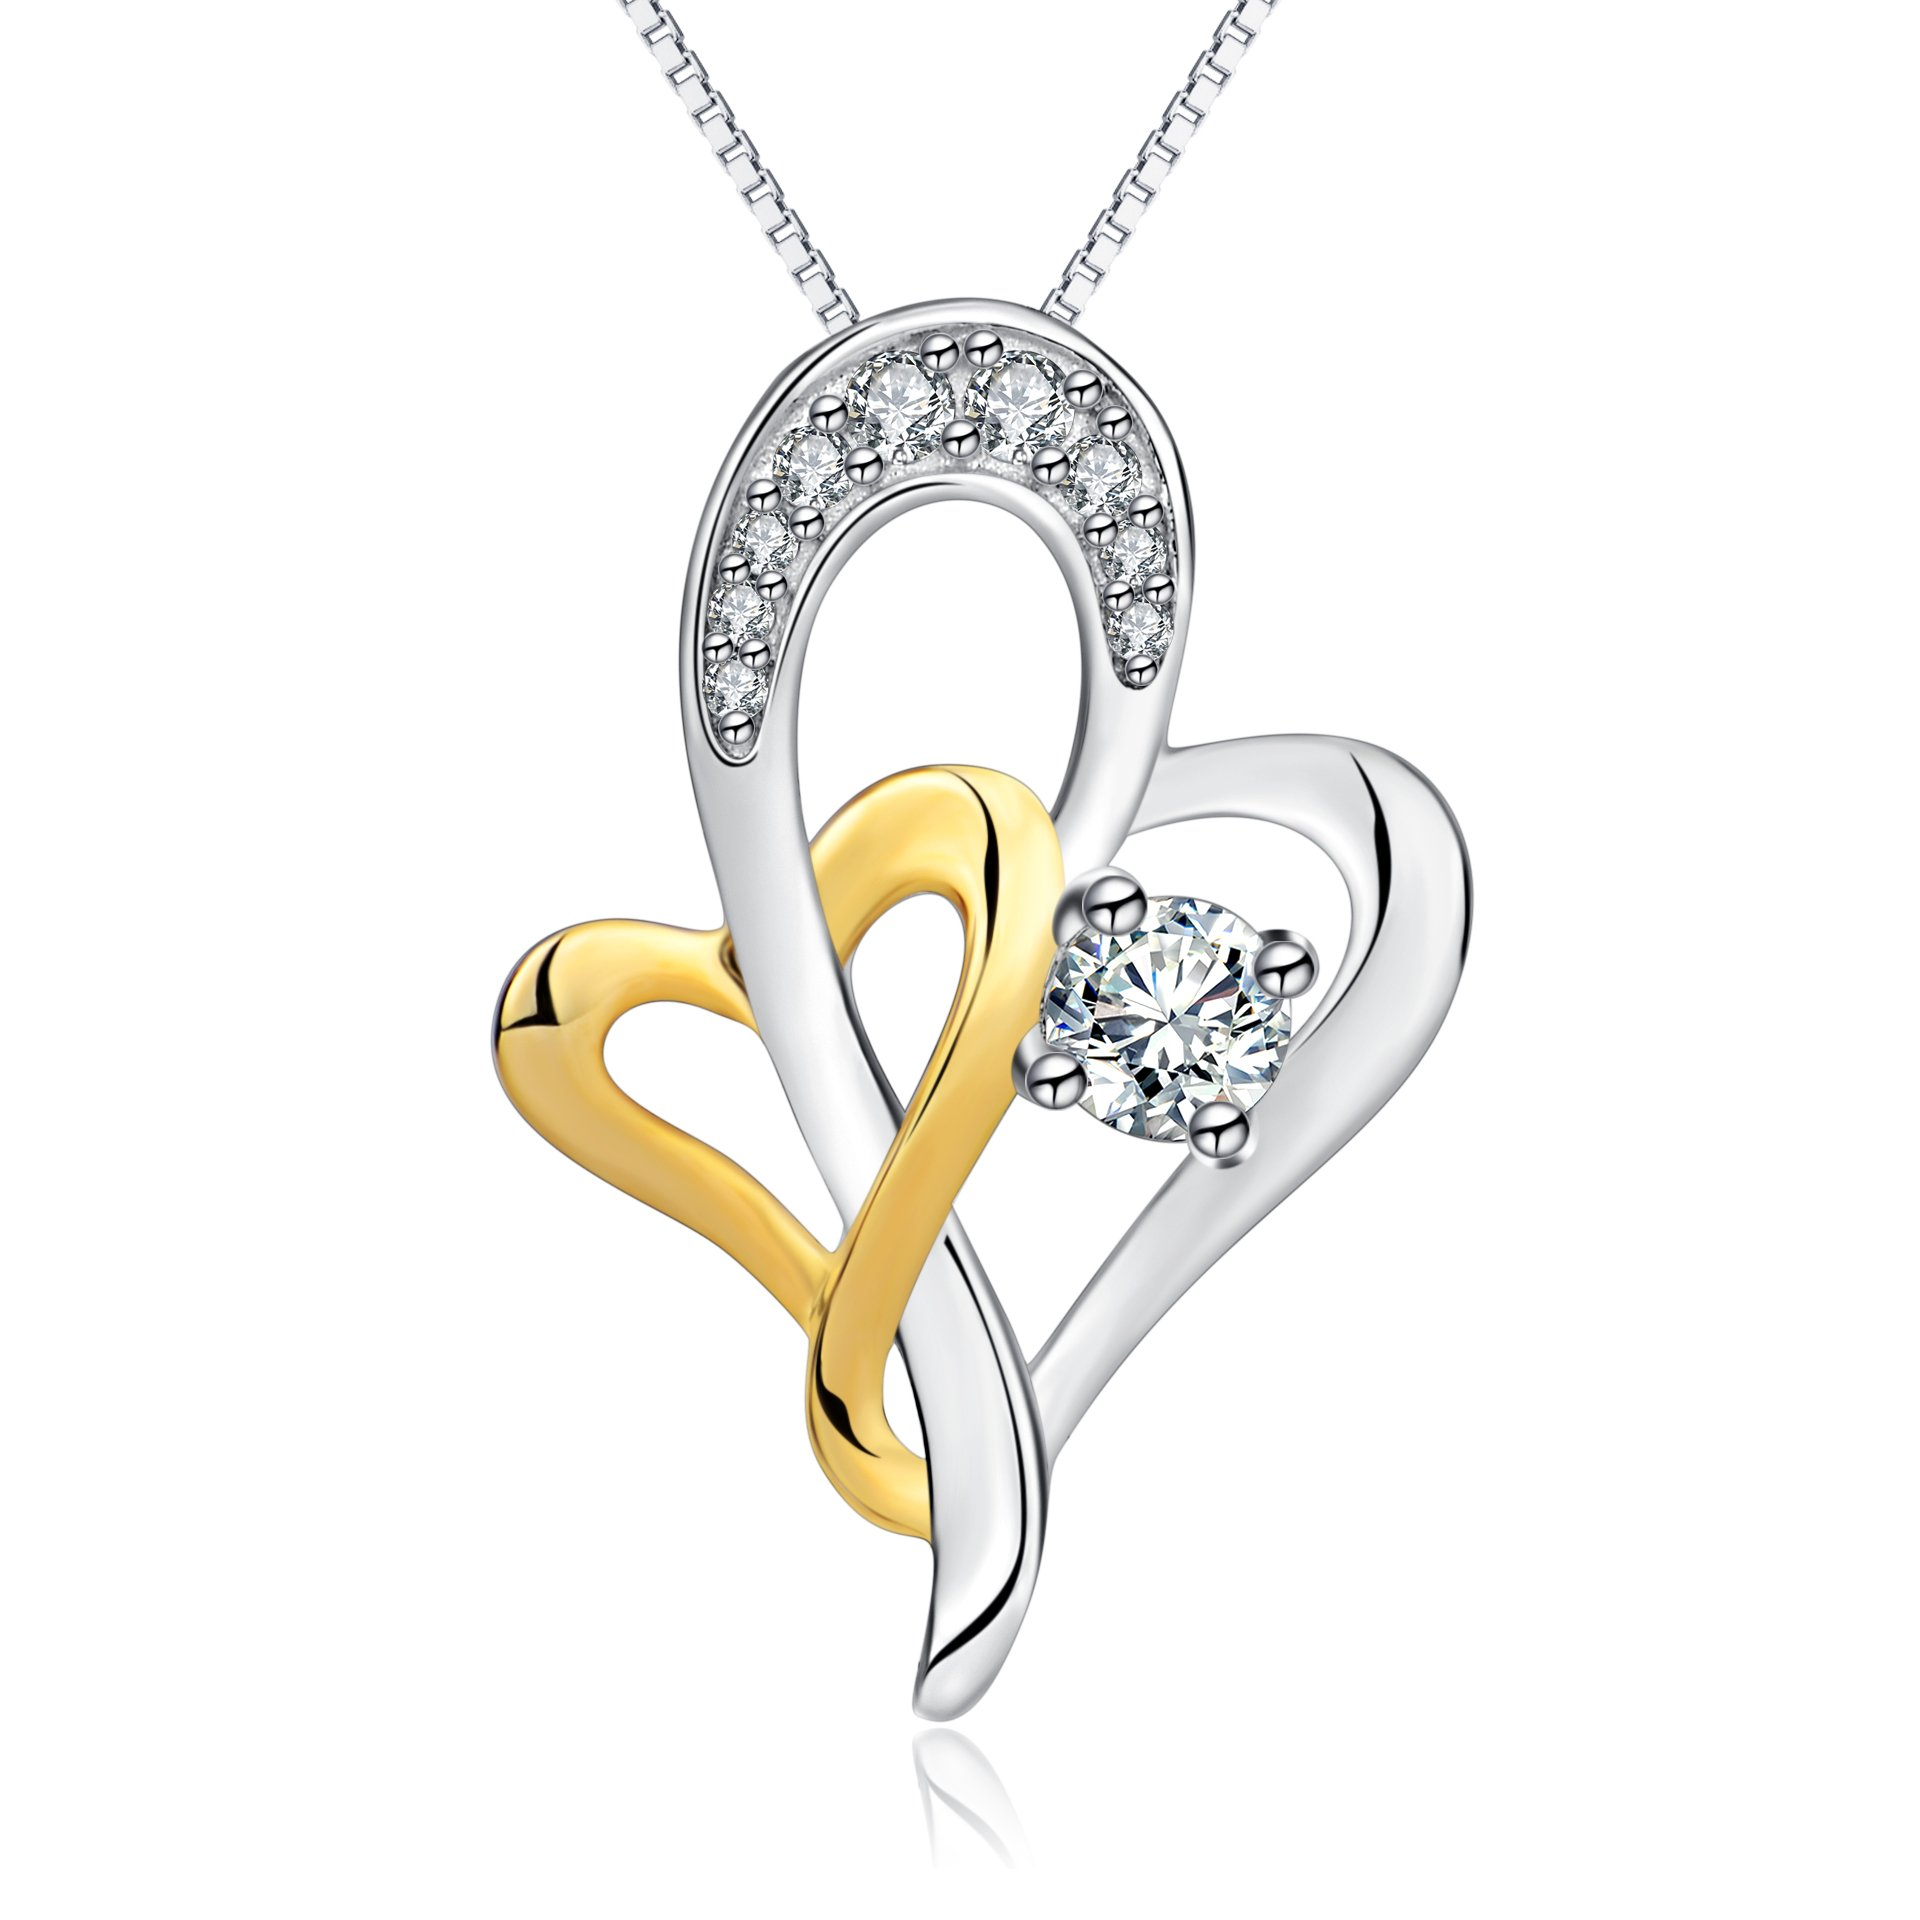 diamond a y pendant gold chain itm tear shape pear drop necklace dancing ct